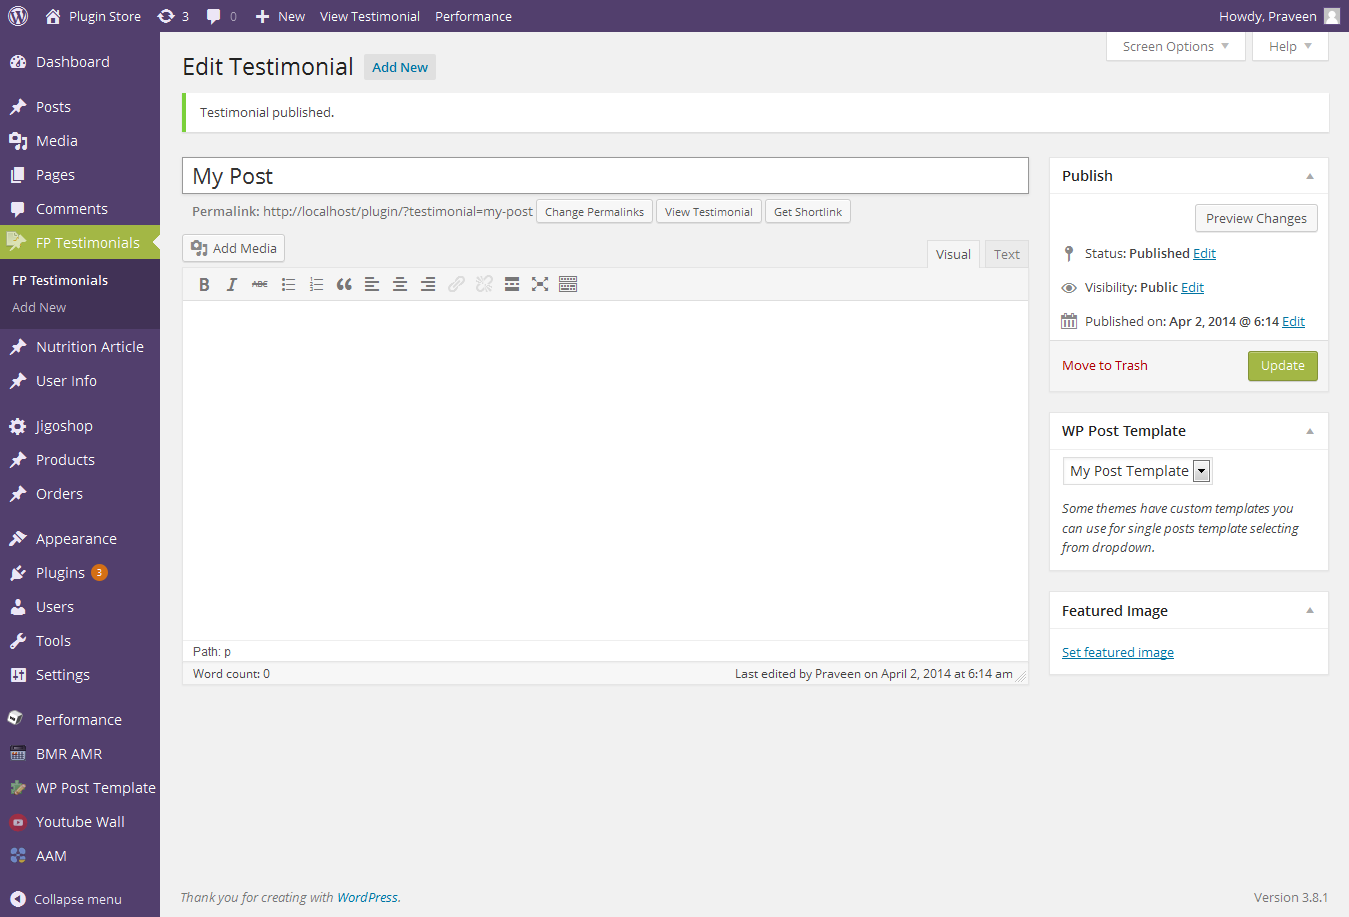 wp-custom-post-template screenshot 3